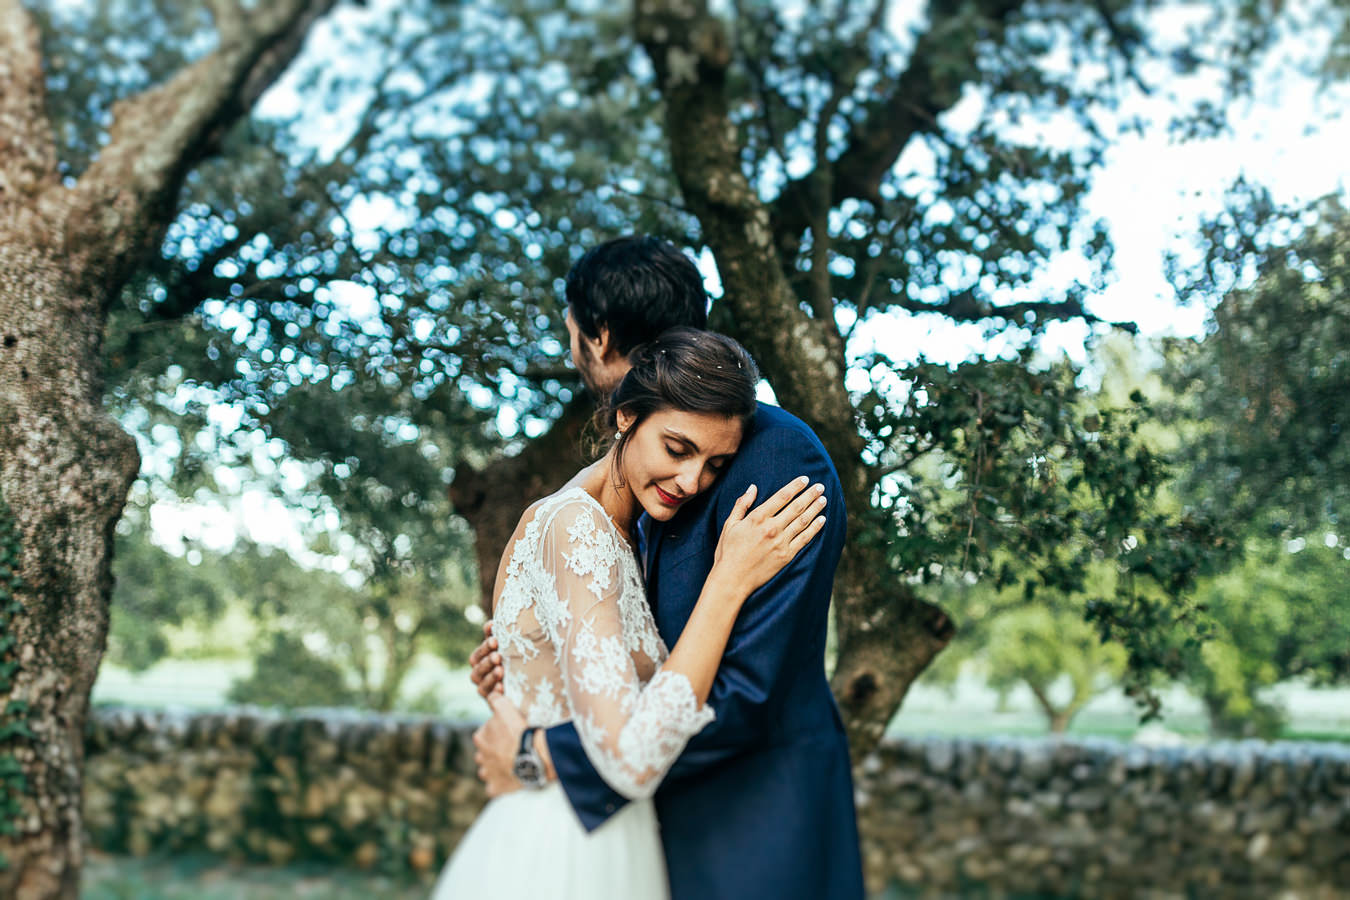 wedding_champetre_domaine_patras_a+p-578.jpg